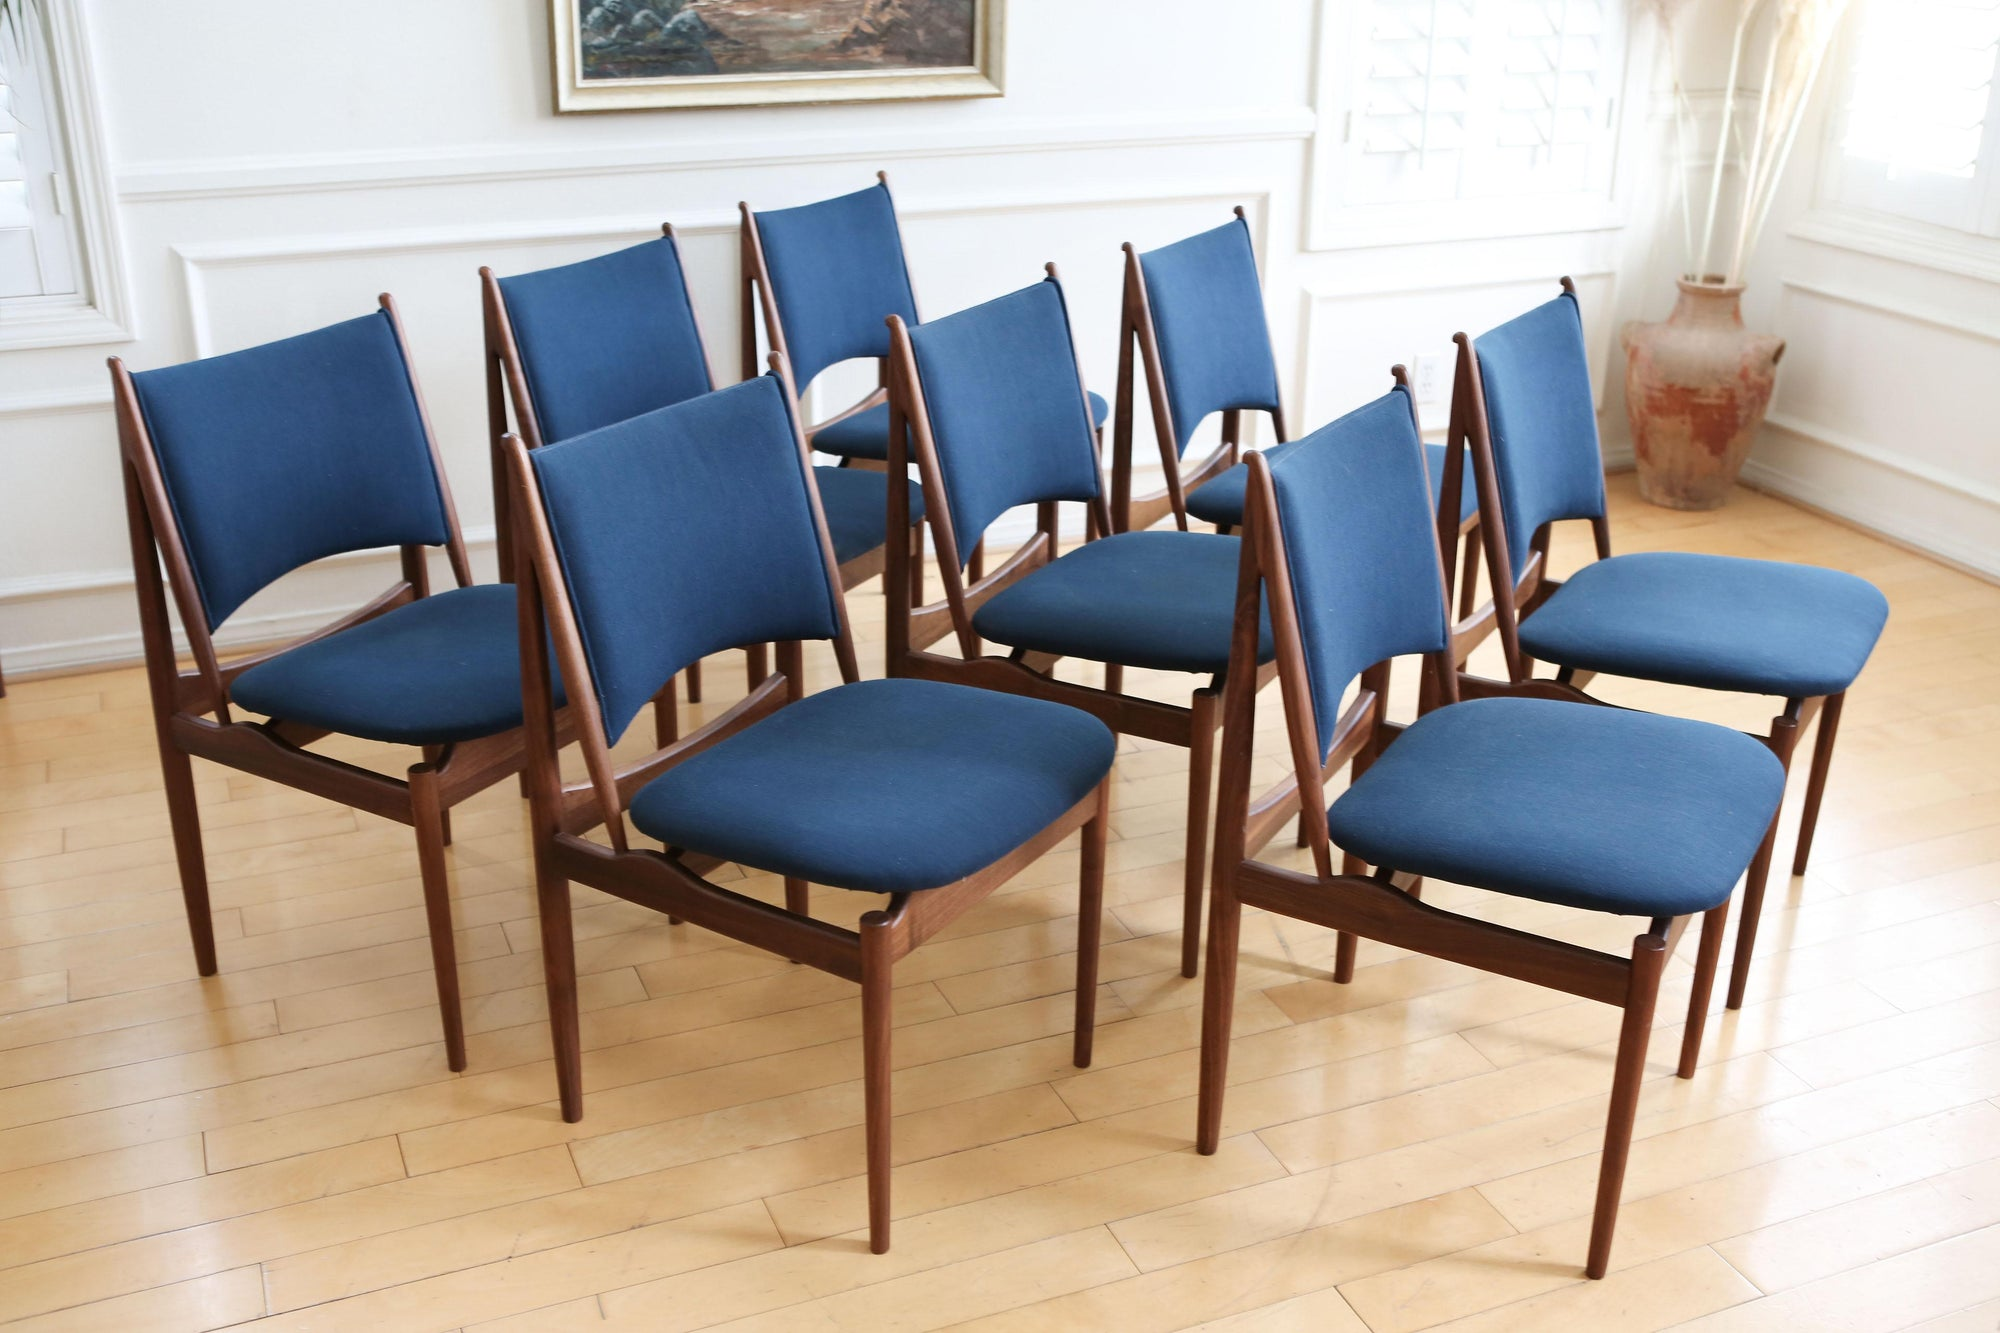 Mid Century Modern Teak Dining Chairs In Navy Blue   Set Of 8 No 627    ShopGoldenPineapple